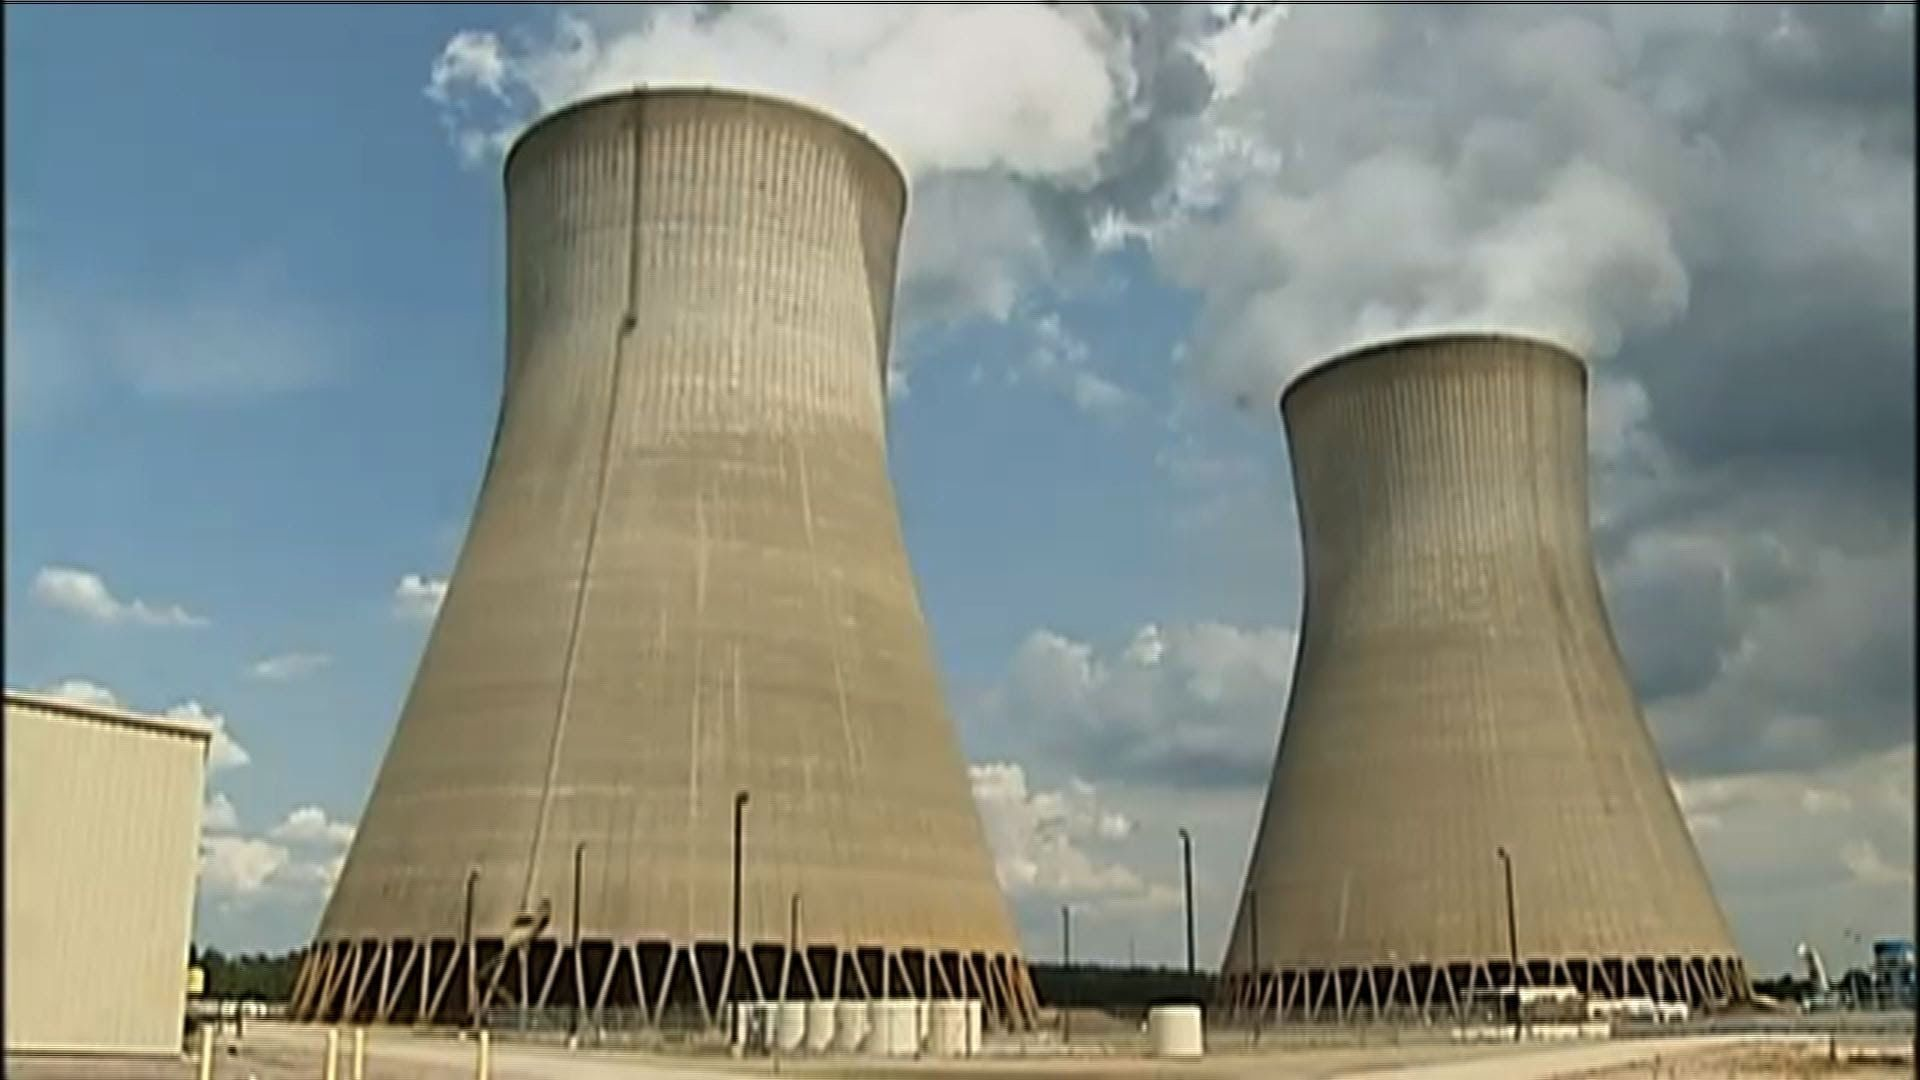 Japan U S Move To Expand Nuclear Power Programs Despite Contamination Japan Announced A Major Push To Rev Energy Plan Health Technology Nuclear Disasters